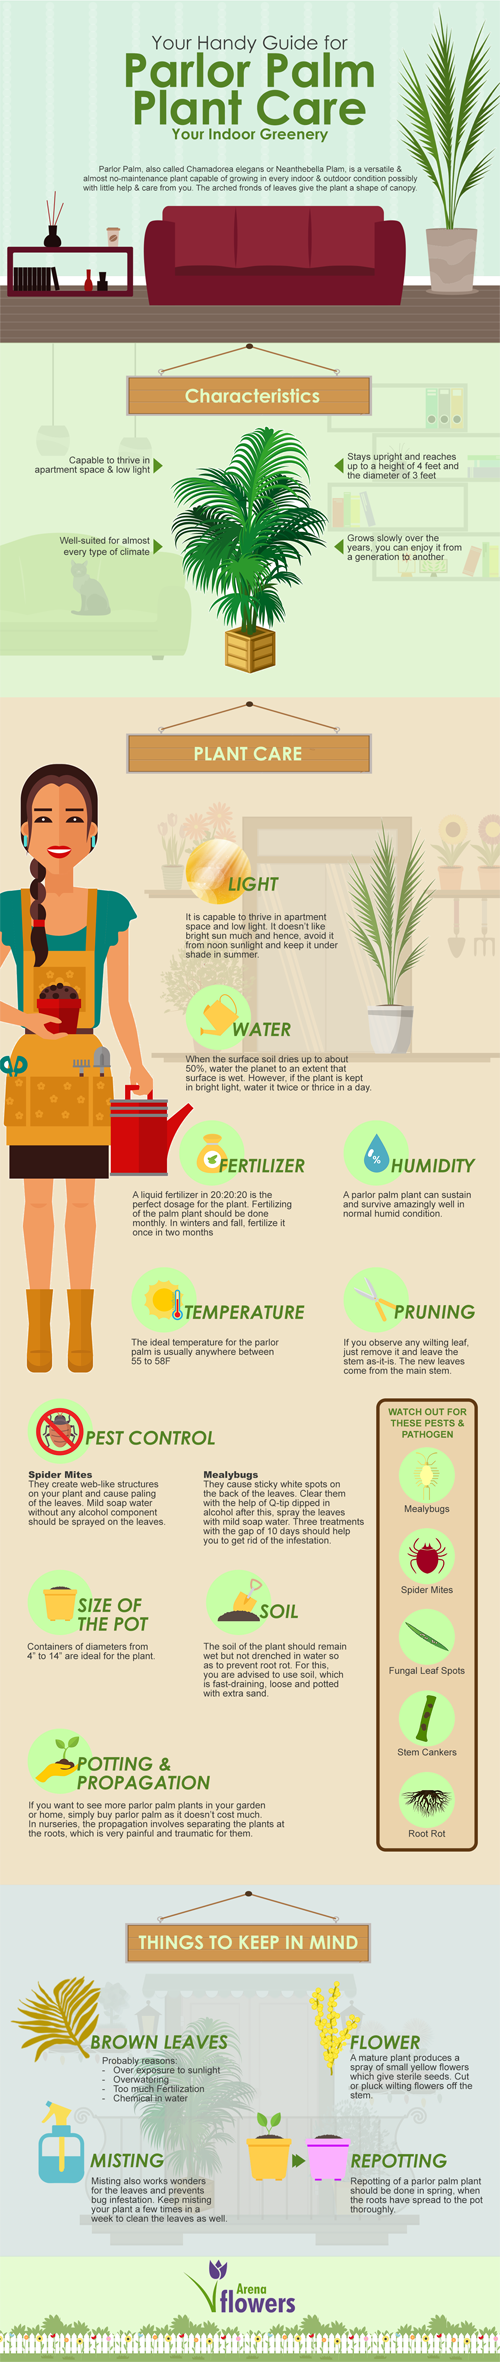 How to Care for Your Parlor Palm - Infographic